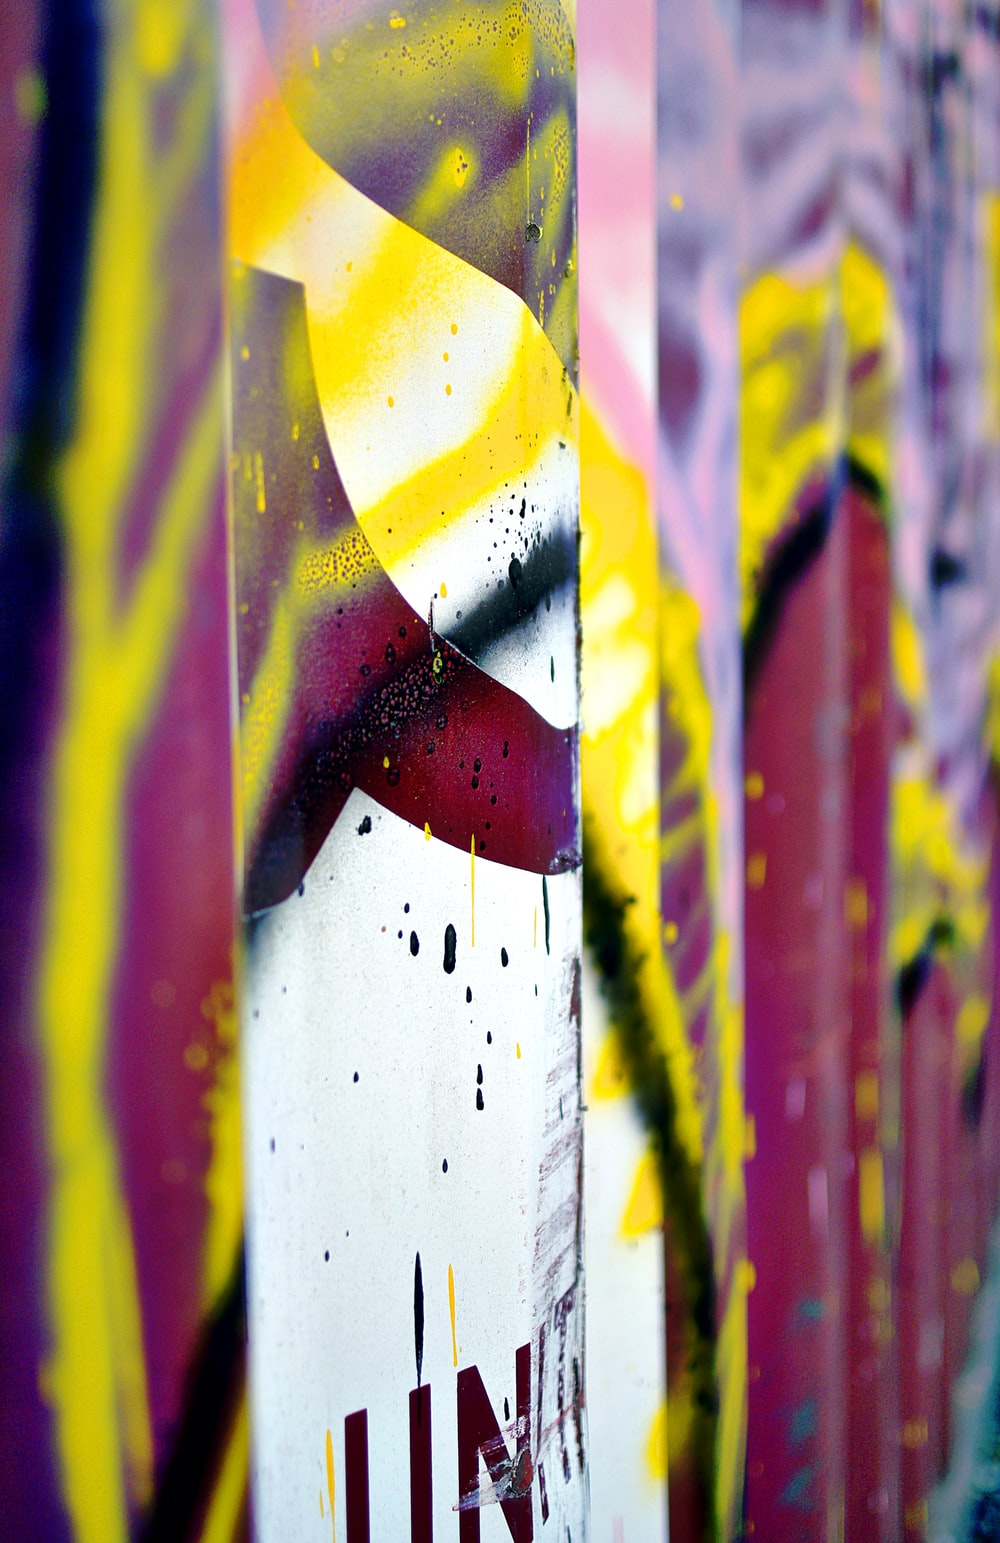 yellow, white, red, and black abstract artwork